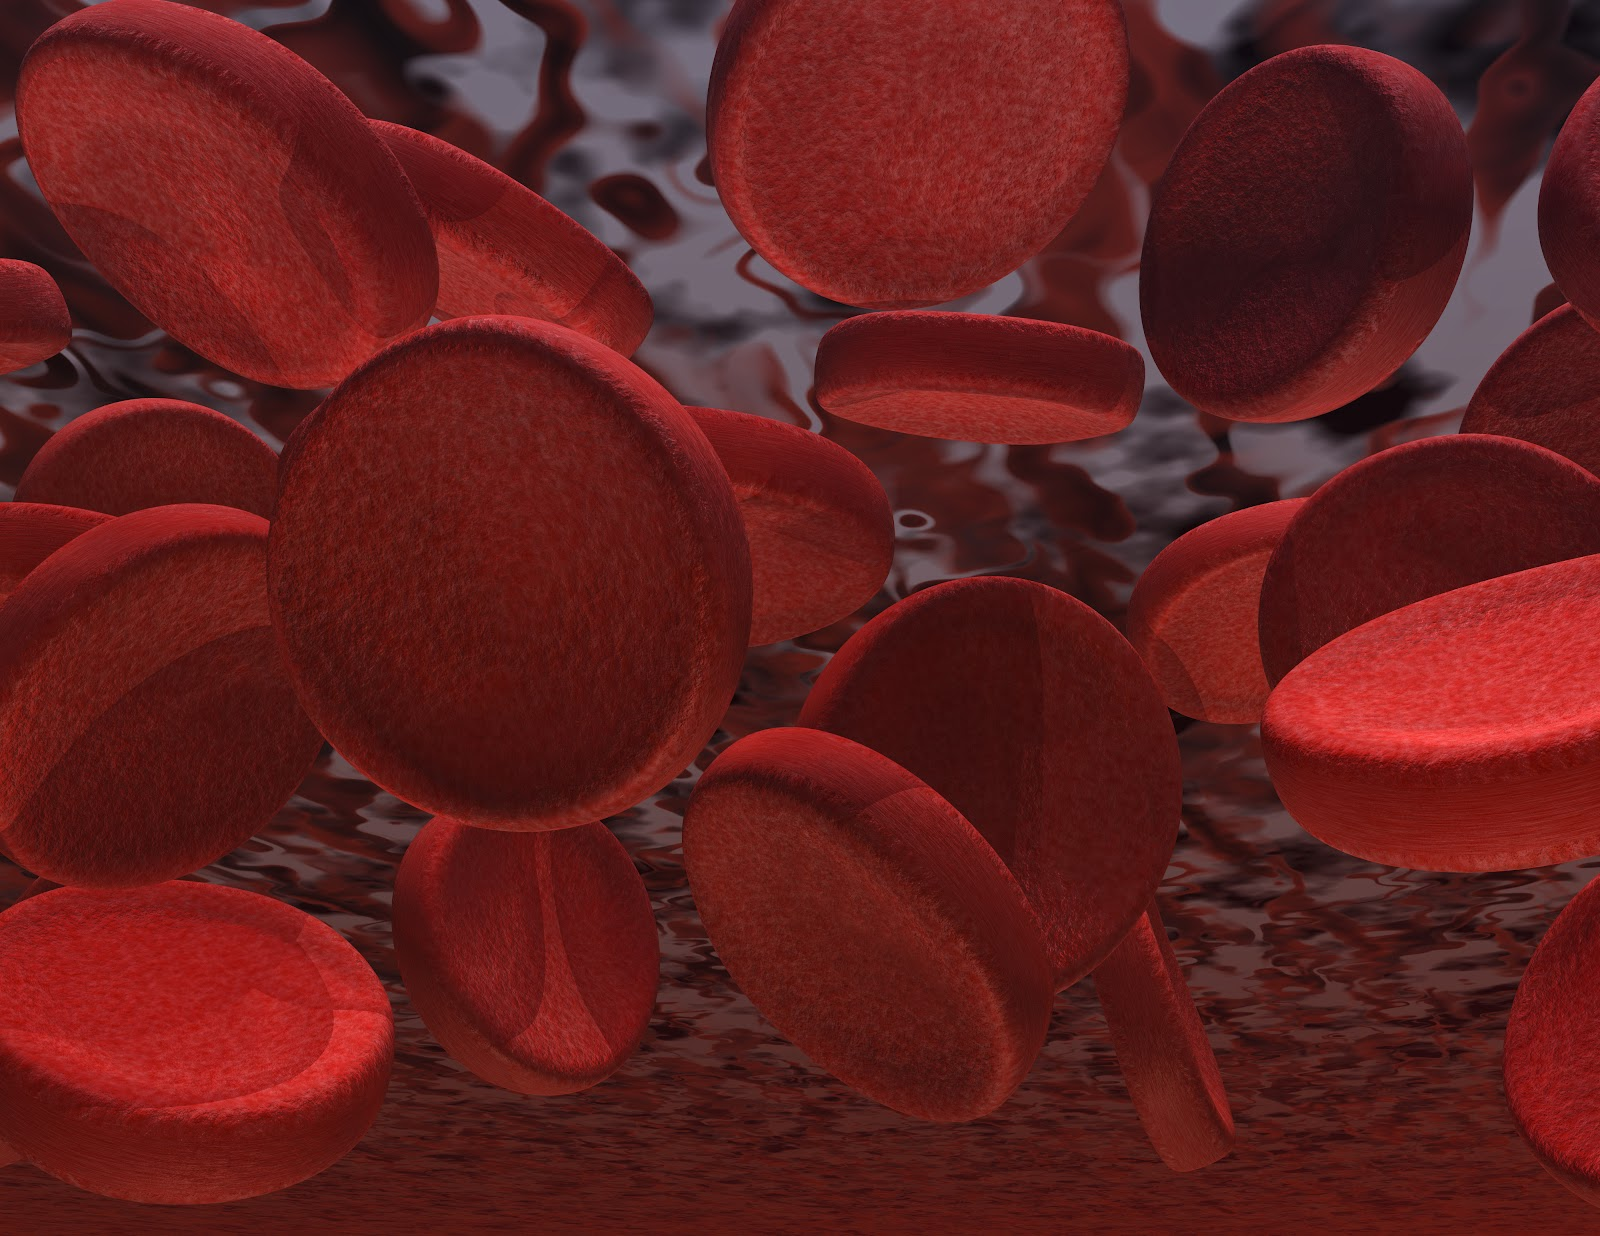 Iron is an essential element for blood production